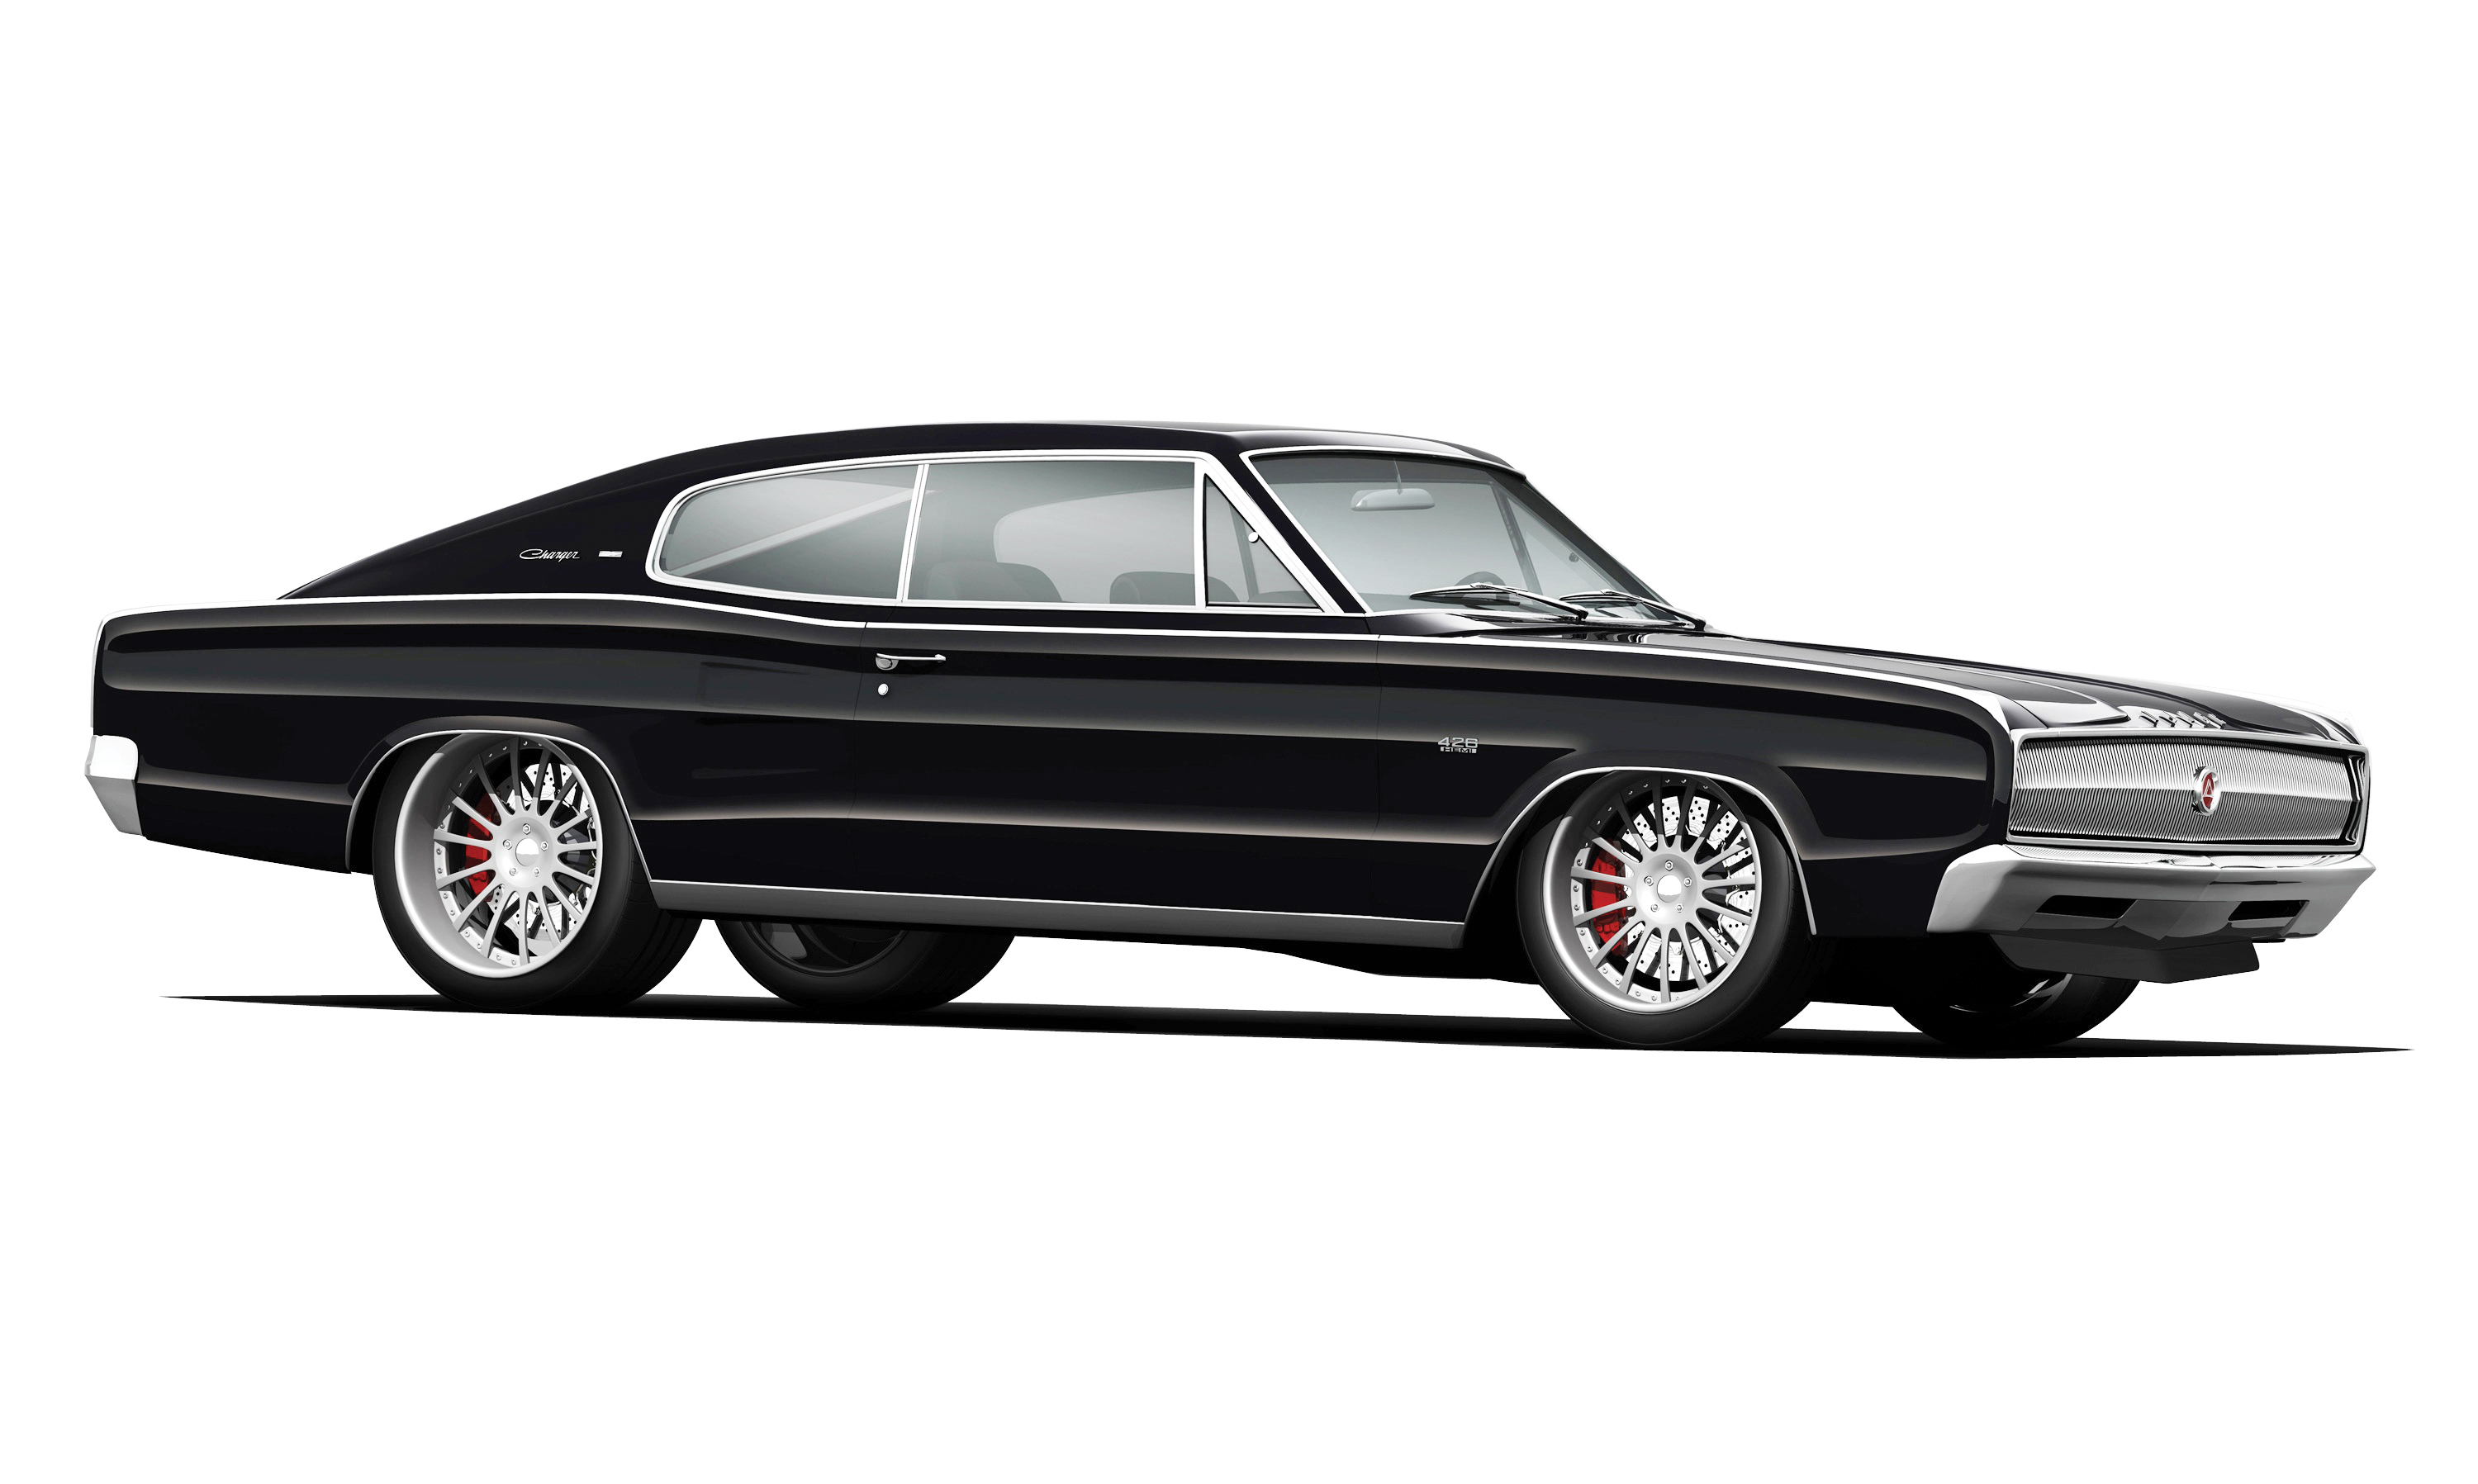 Frilly little spokes can turn a manly car like a '67 Charger into a mimosa-swilling cross-dresser. The Euro tuner look works on smaller ponycars, but the insanity needs to stop before it escalates to midsize muscle cars.